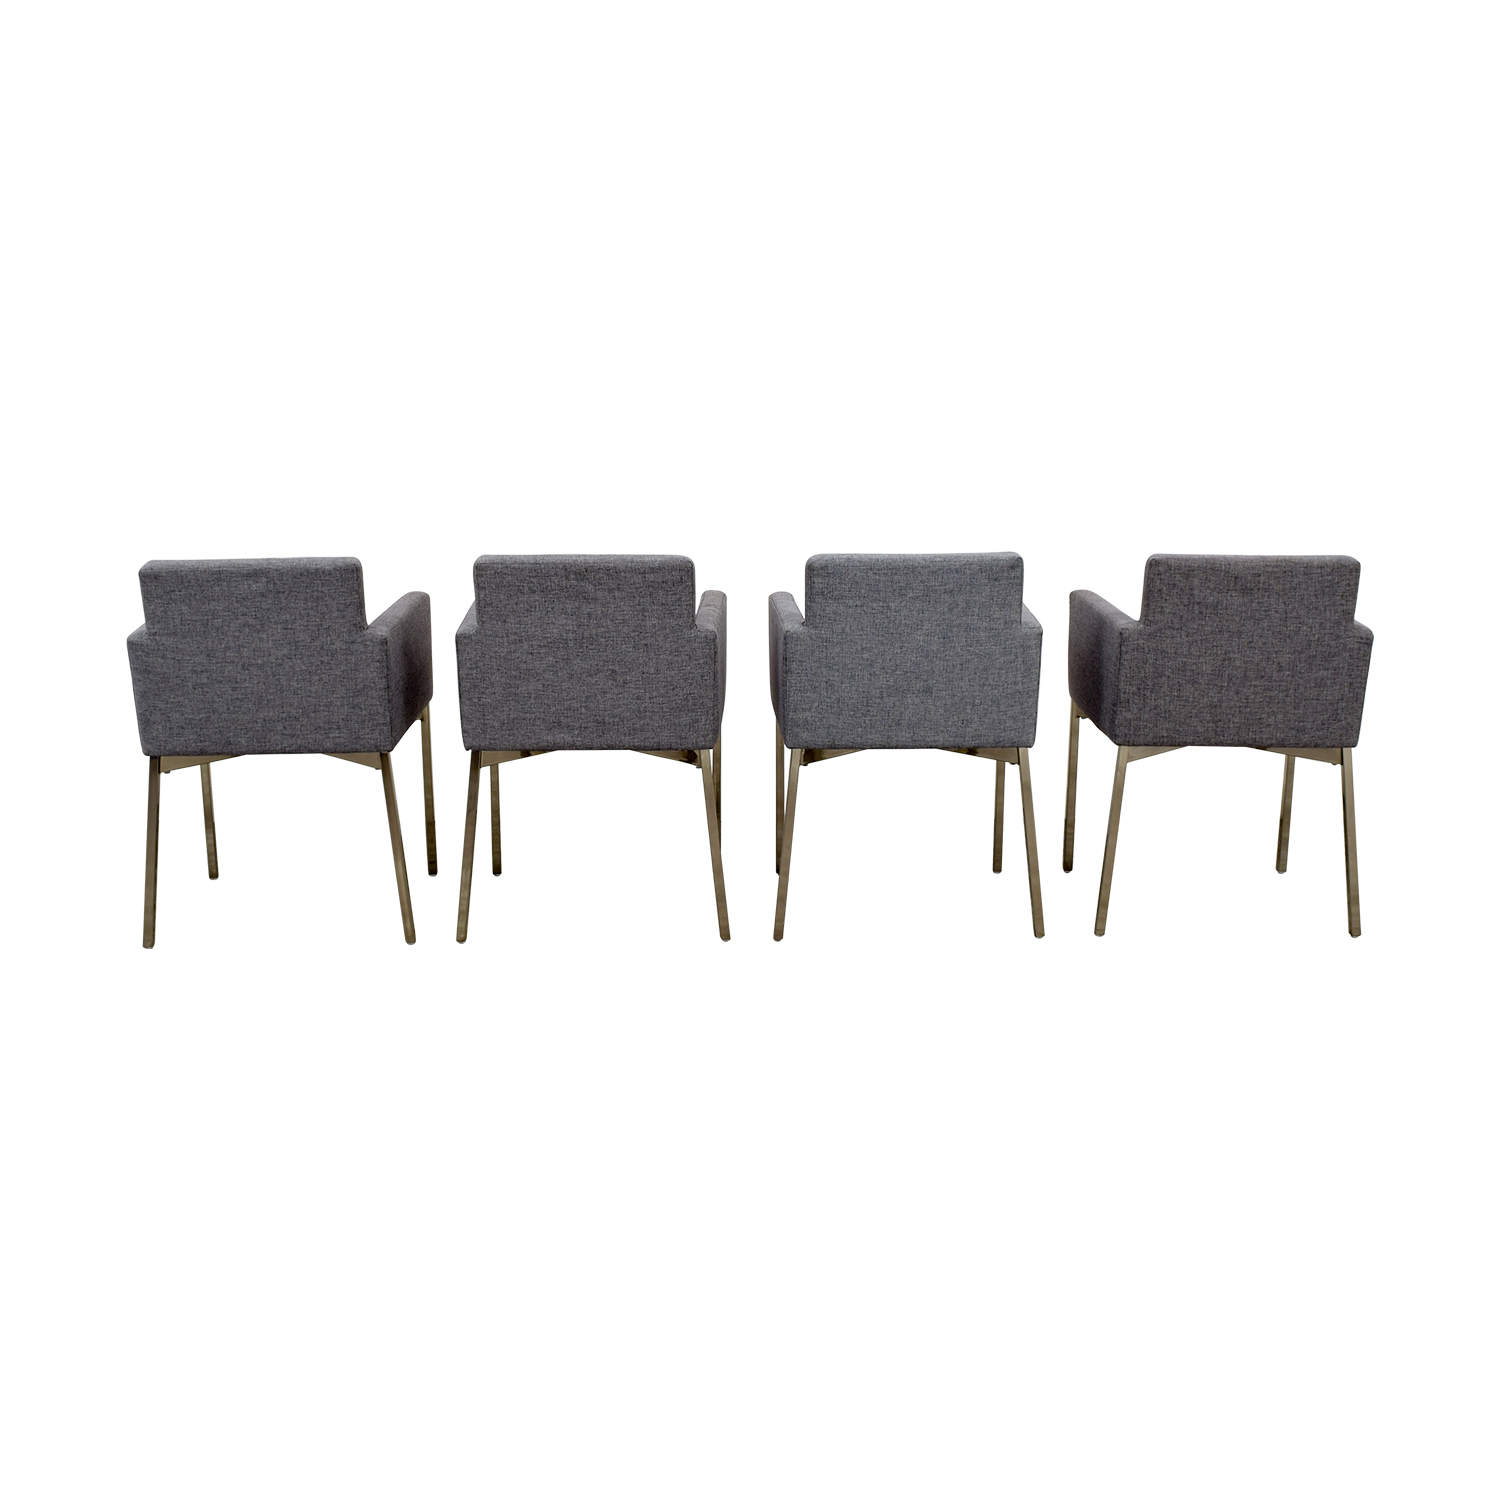 CB2 Gray Chairs sale